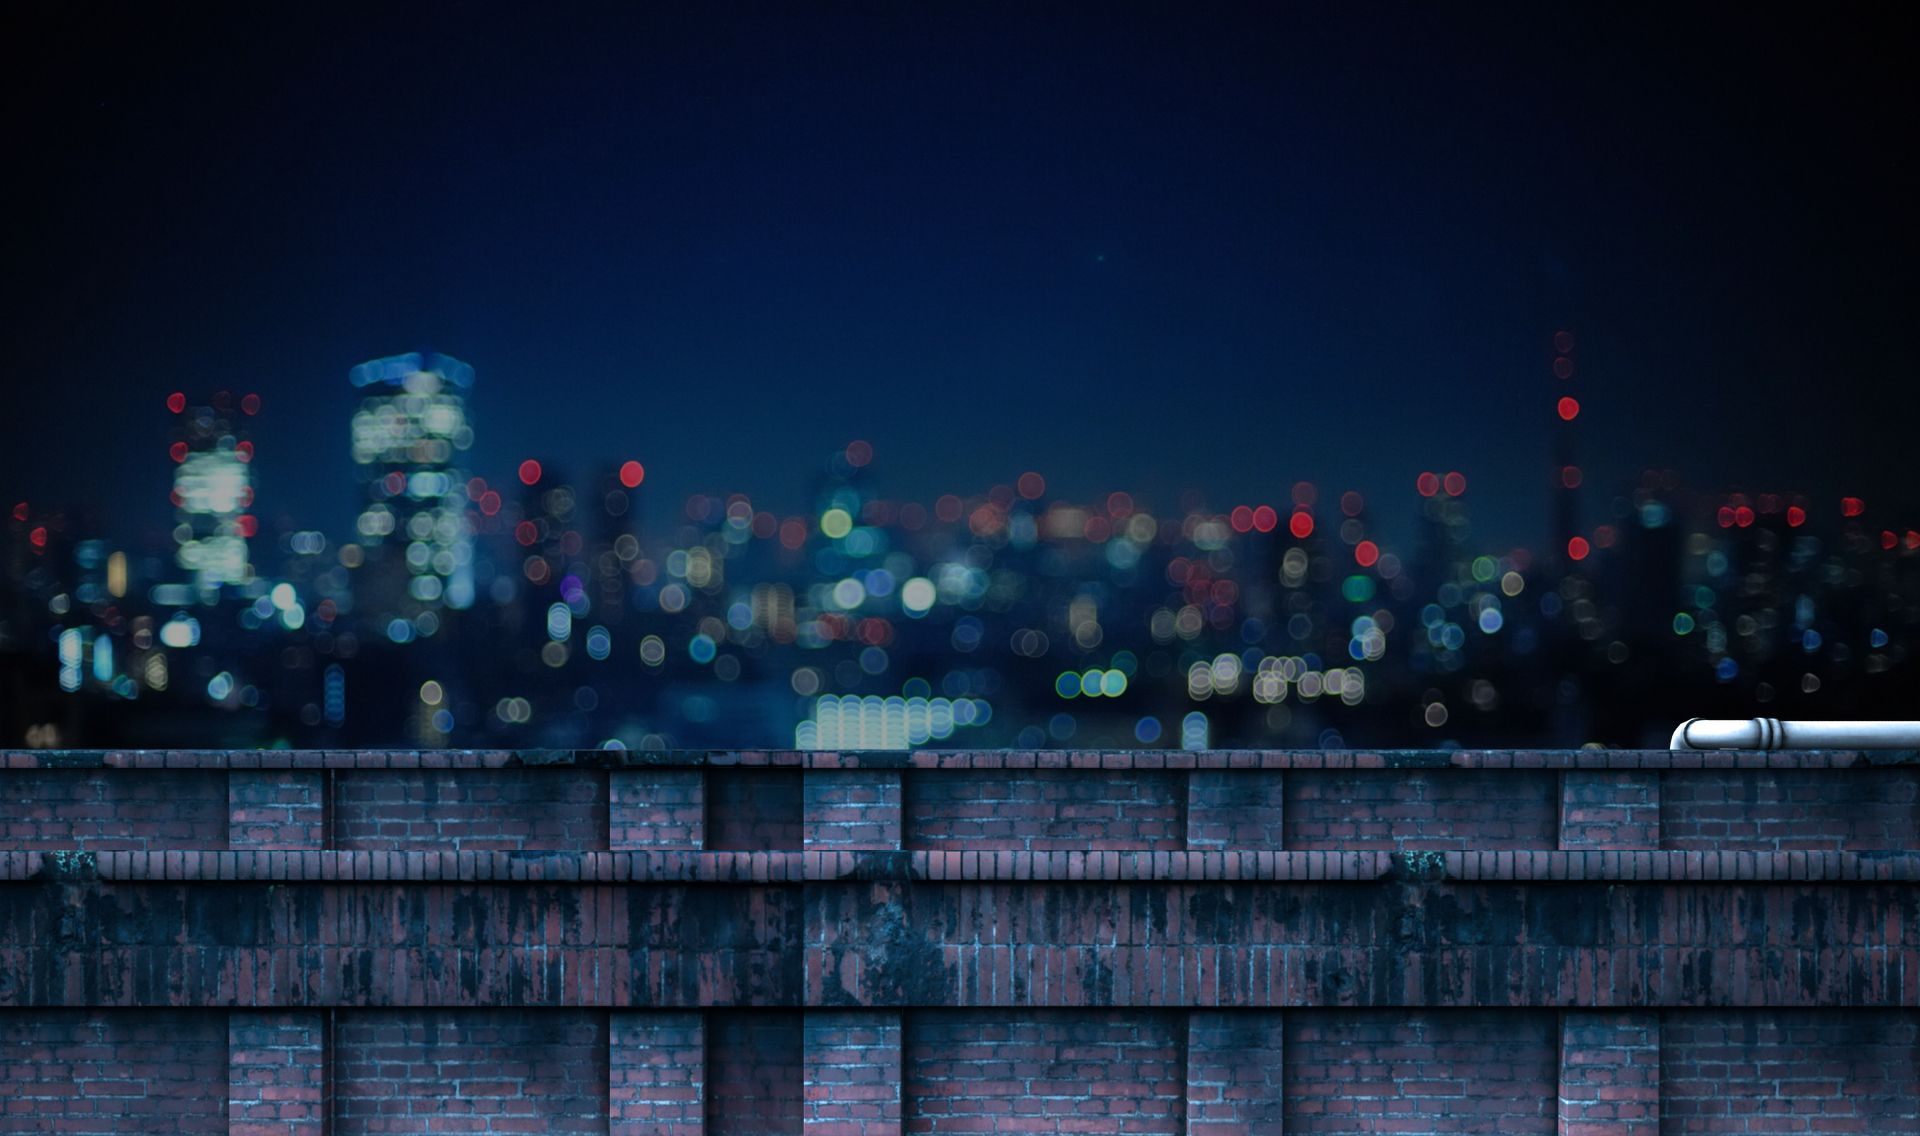 Ext Rooftop View Night Night Background Episode Backgrounds